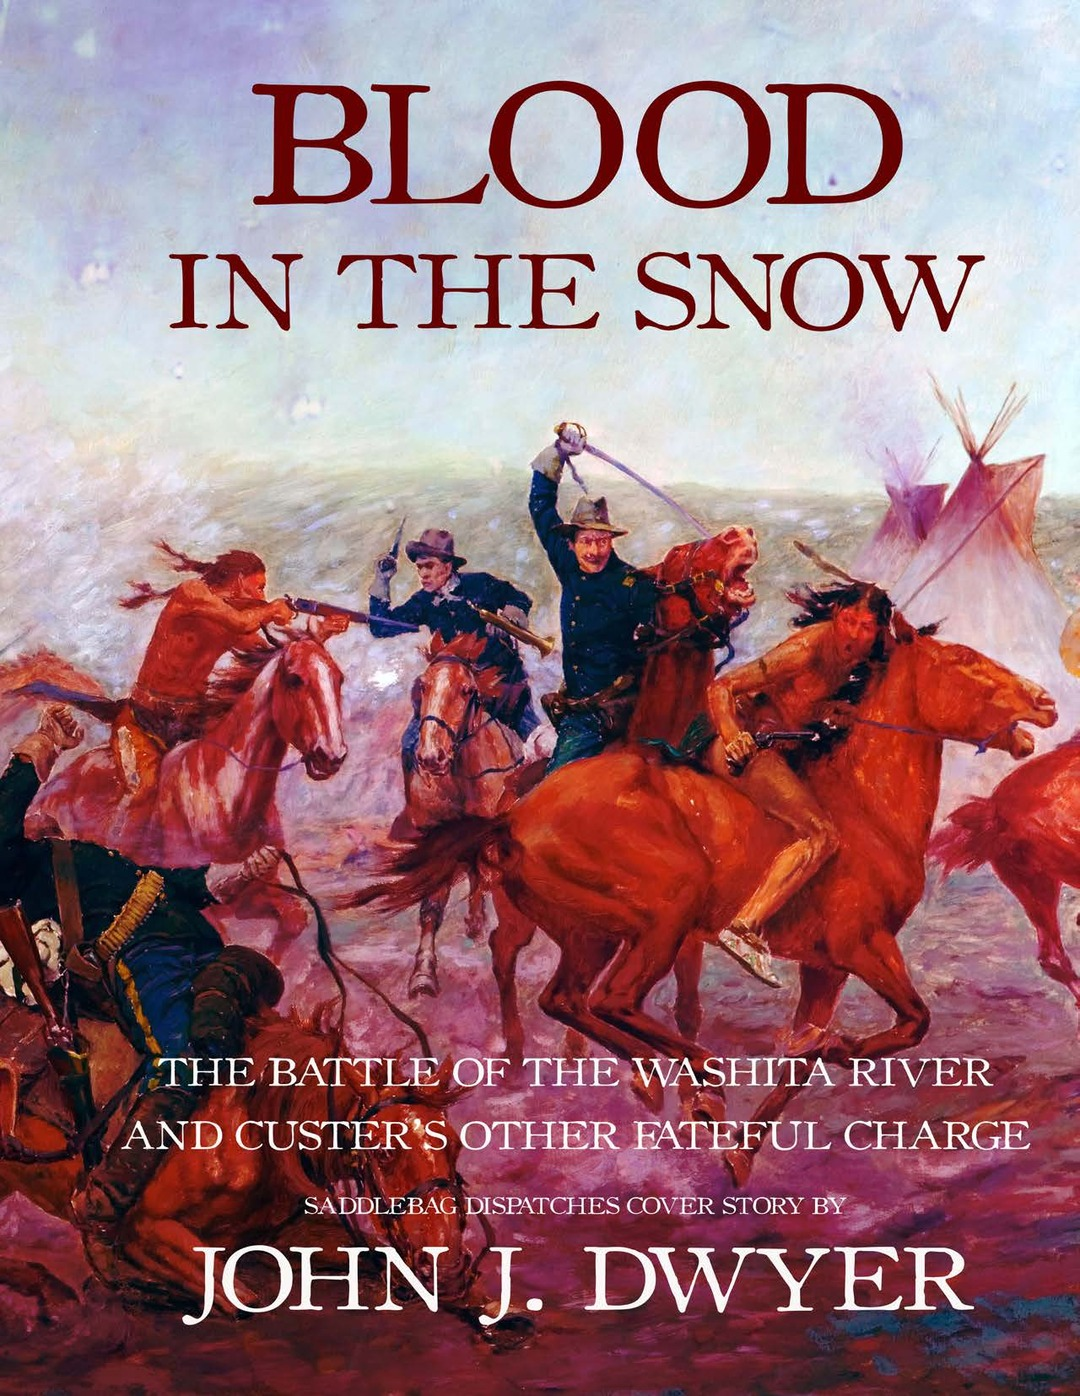 Page 62 of Blood in the Snow: The Battle of the Washita River and Custer's Other Fateful Charge